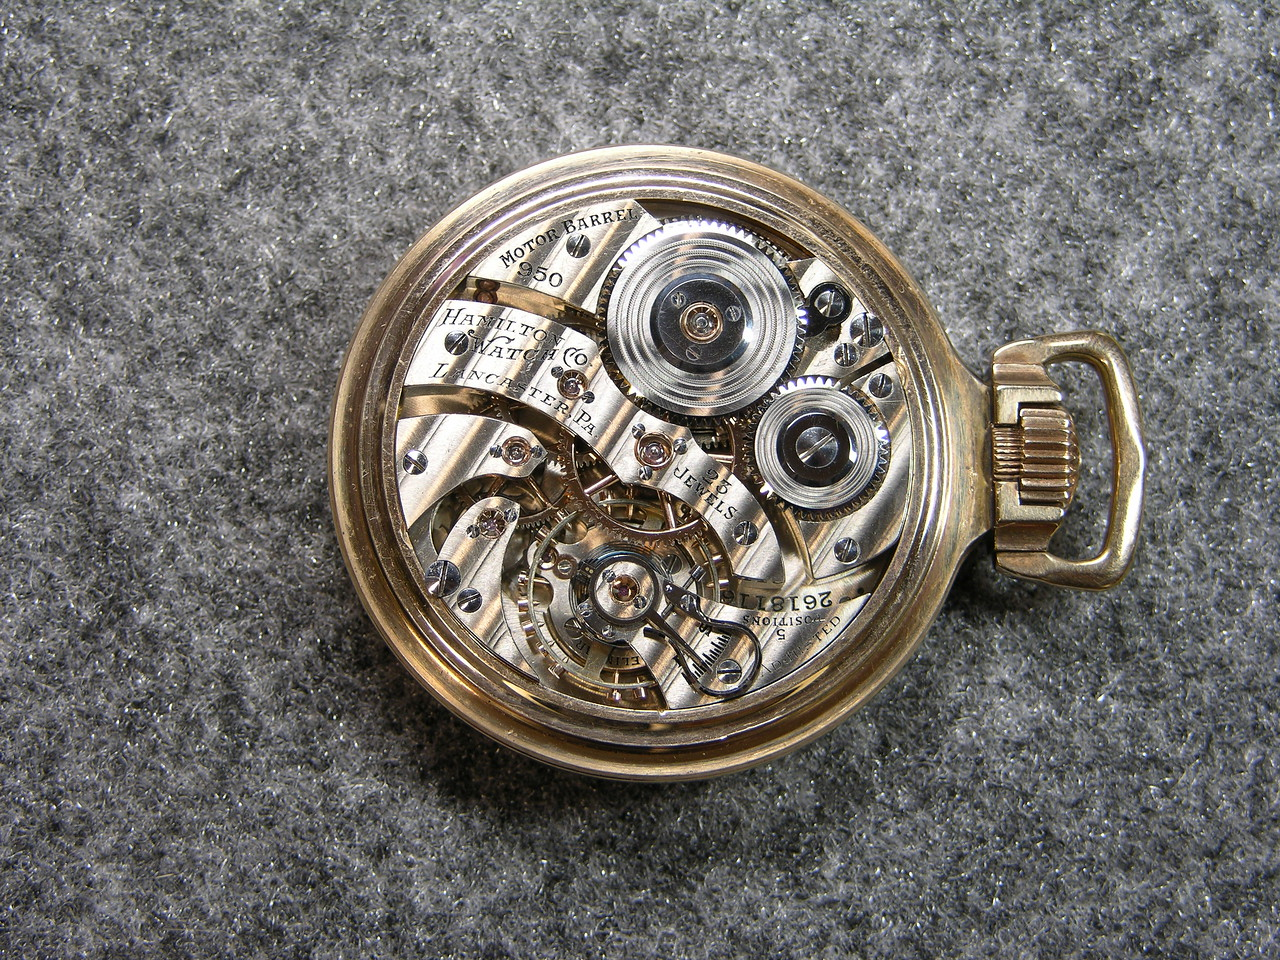 950 Elinivar Movement, SN 2618116          23 jewels, manufactured 1937-1941          total production 7,001